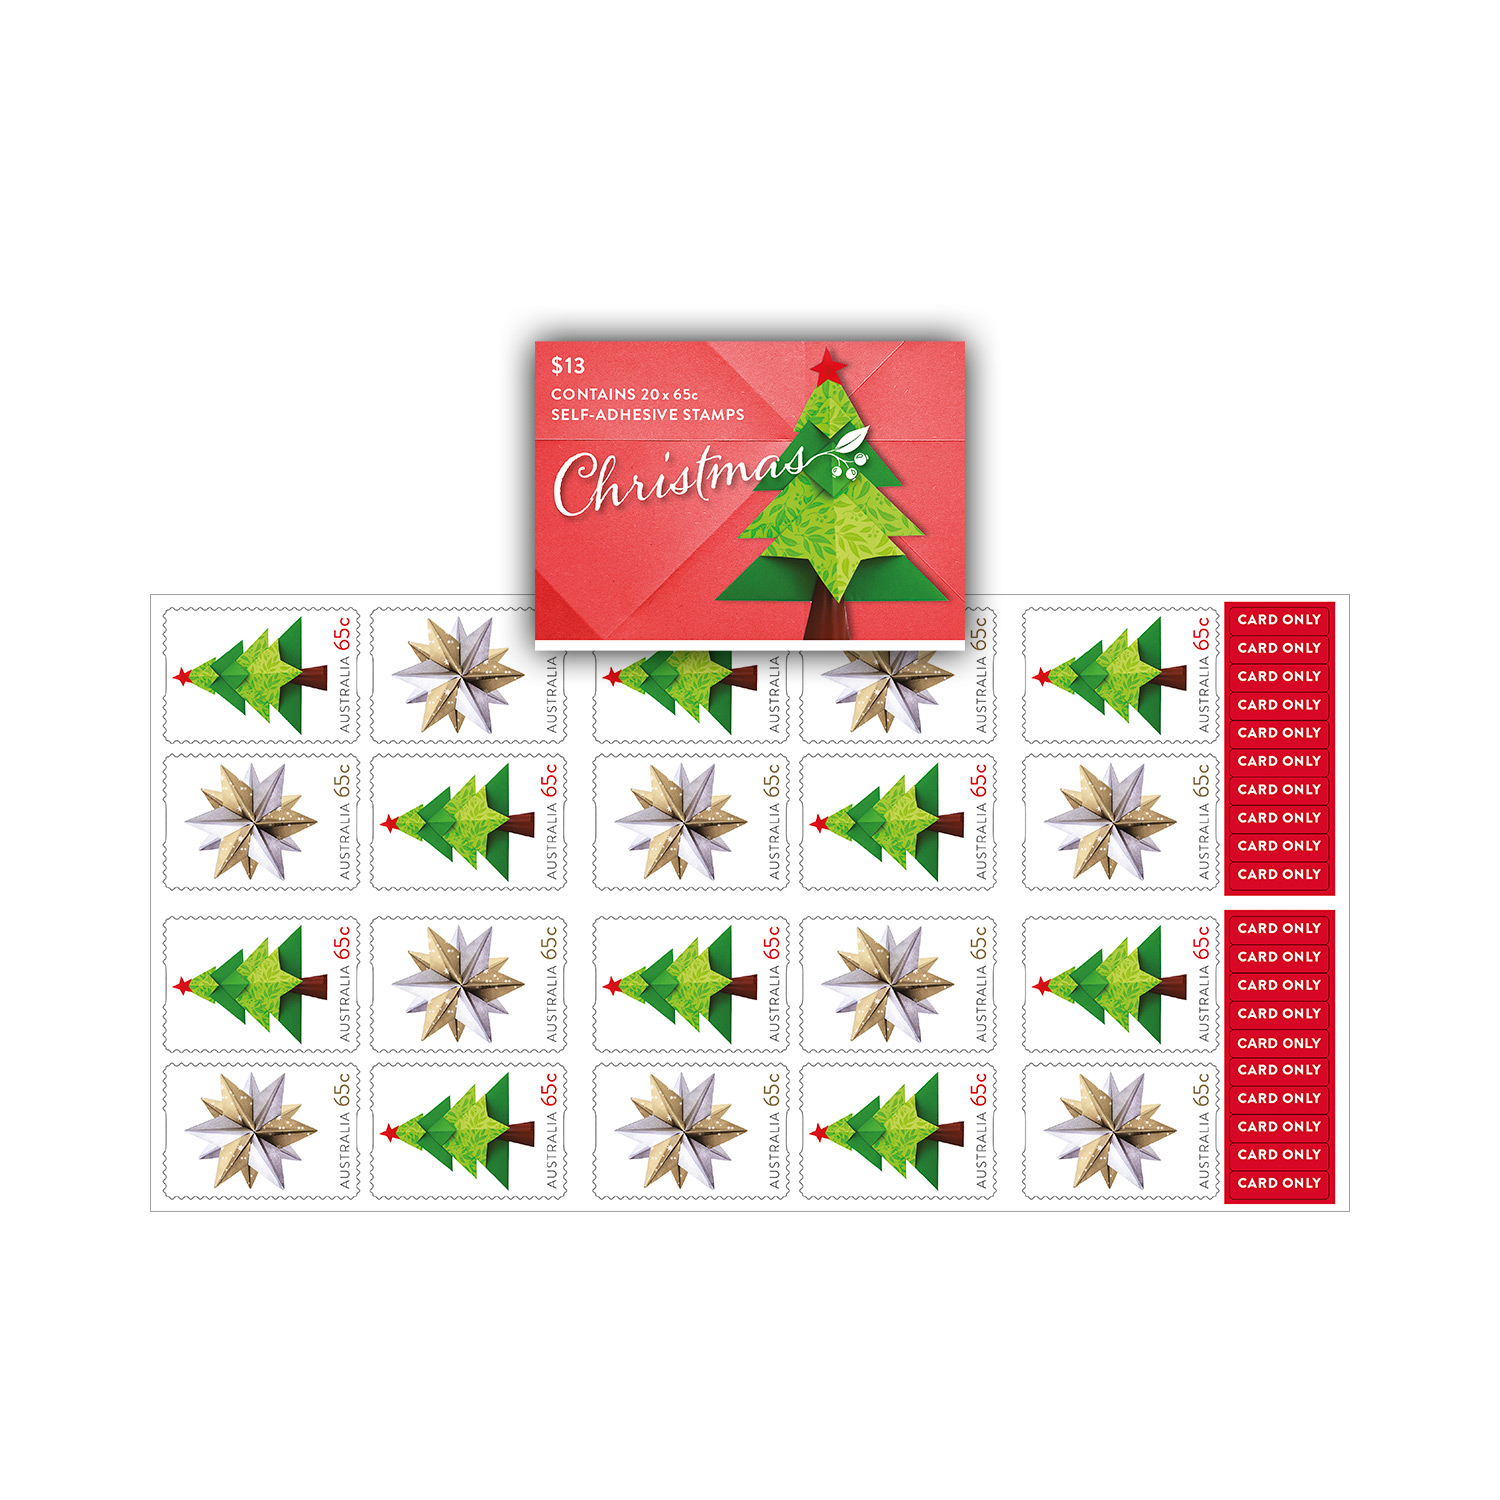 Christmas Stamps 2019.Booklet Of 20 X 65c Christmas 2019 Secular Stamps